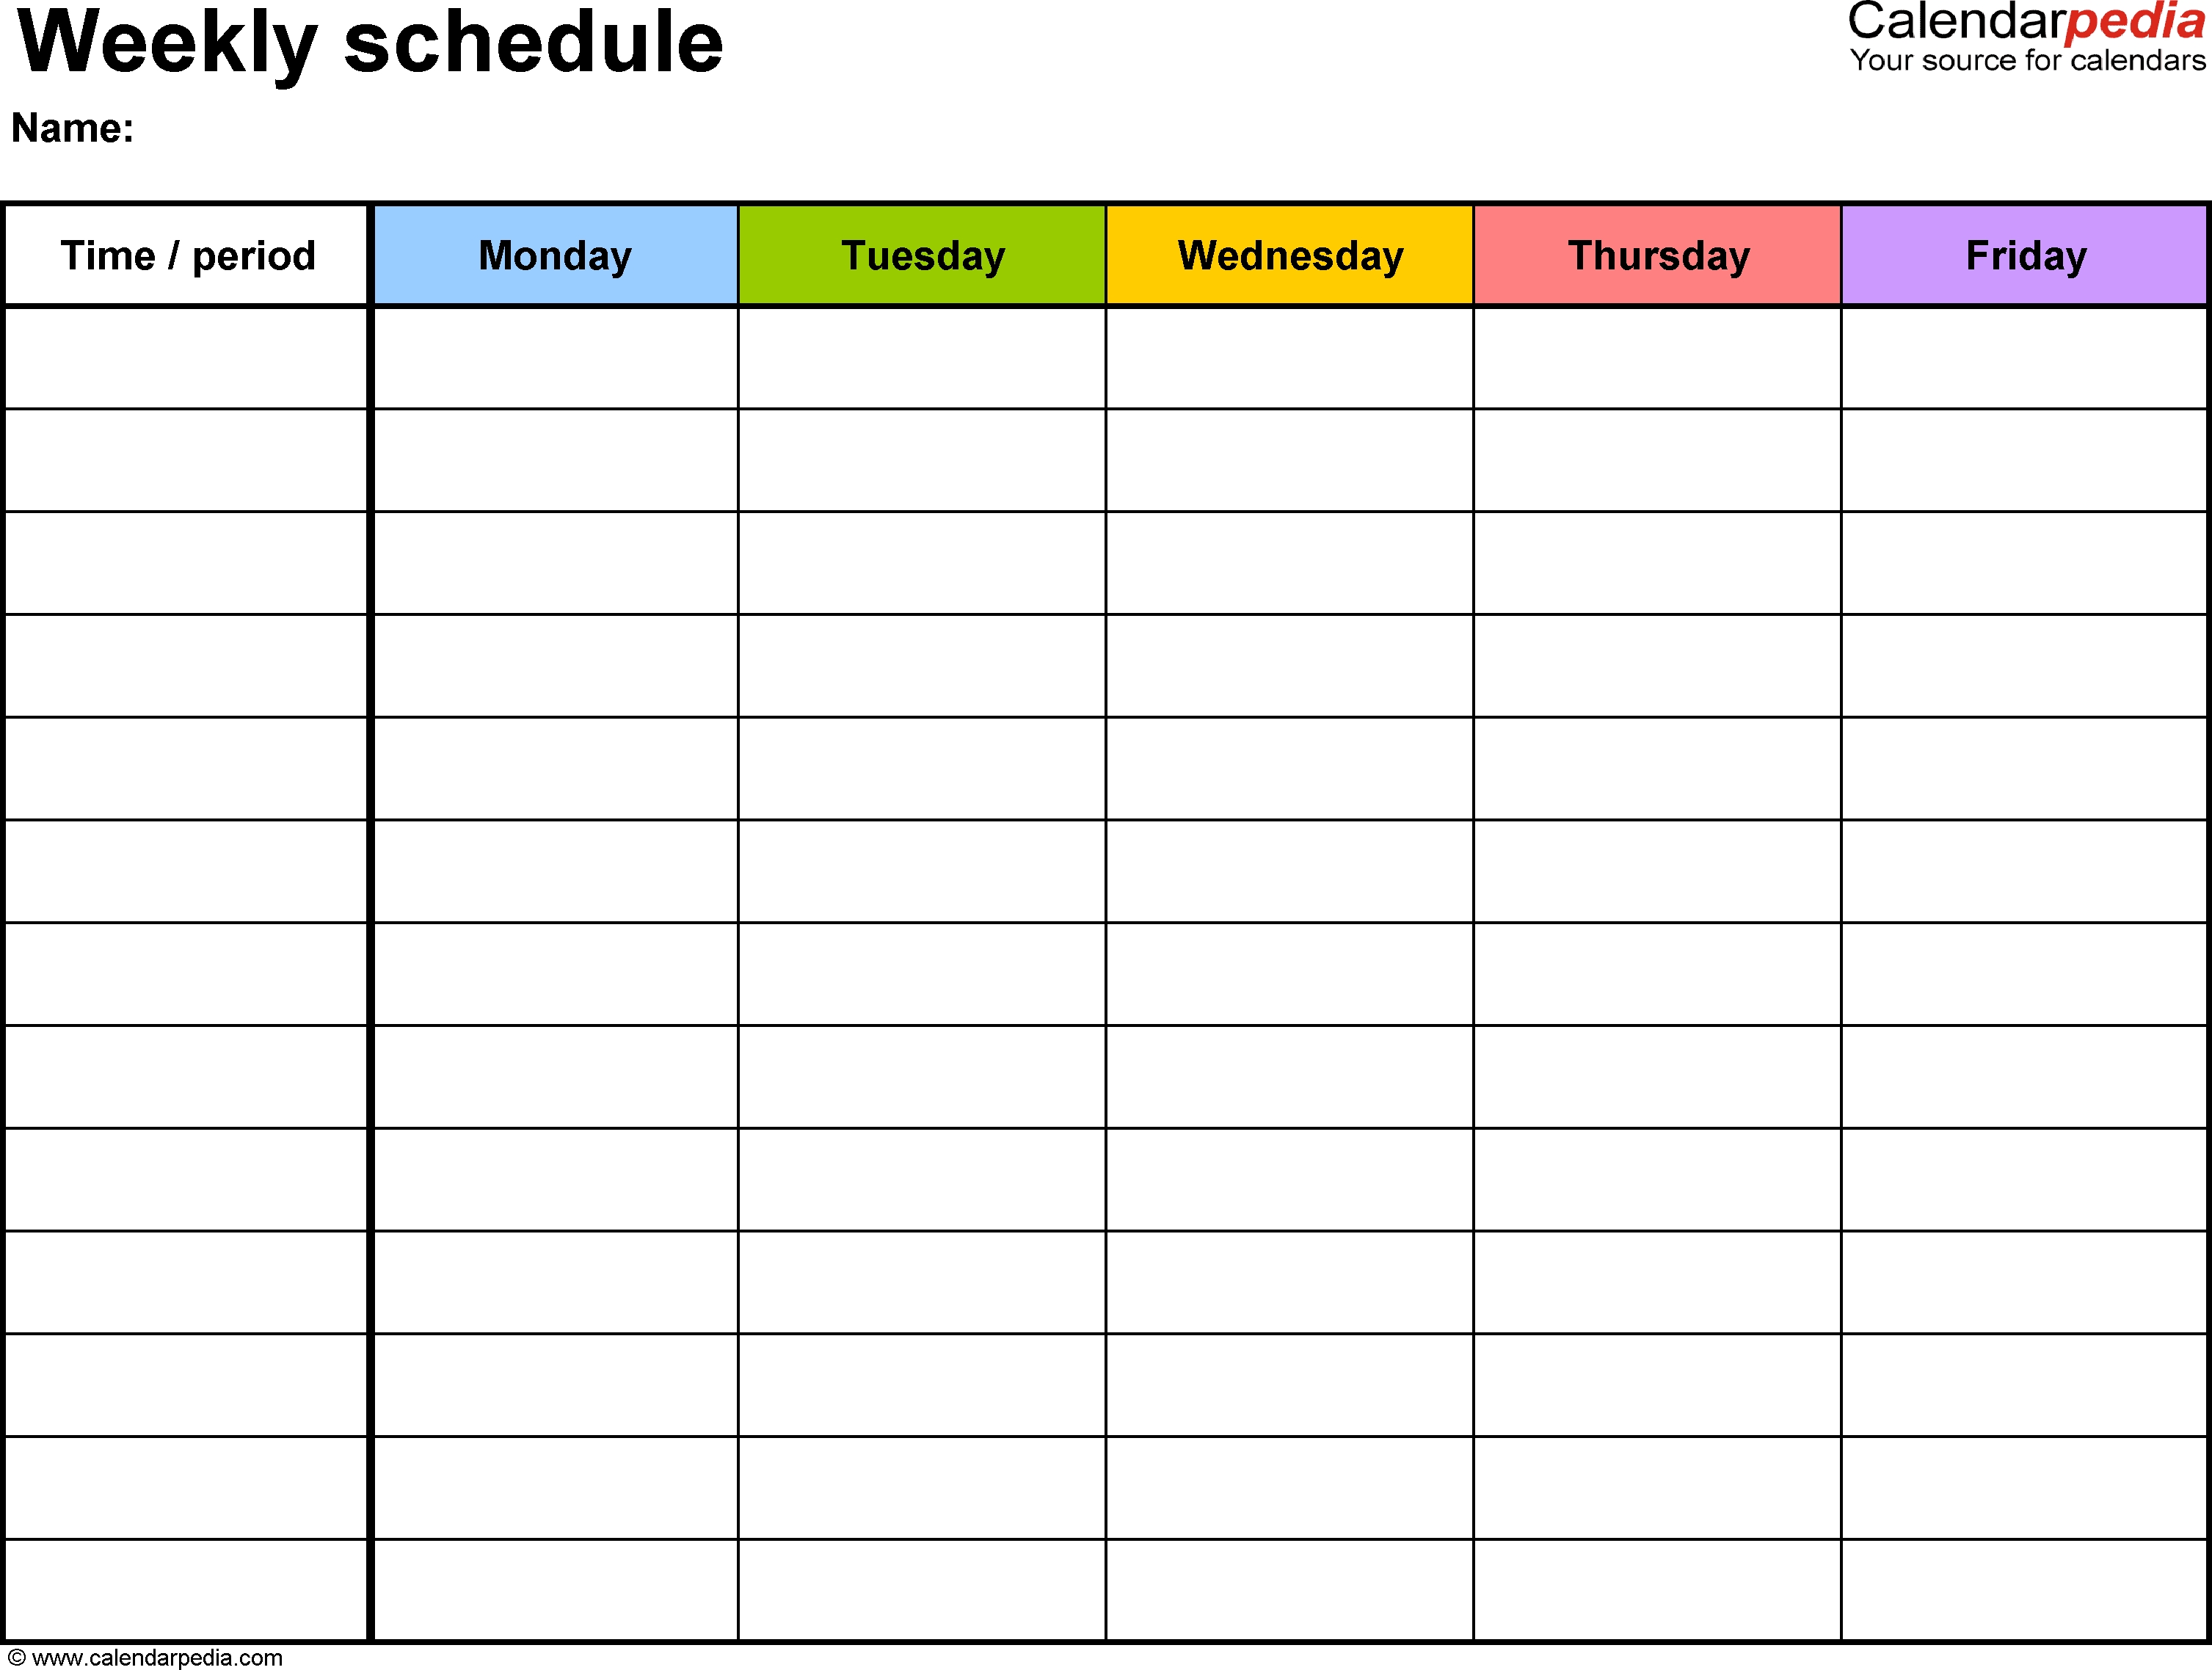 Free Weekly Schedule Templates For Pdf - 18 Templates throughout Calendar Weeks Printable No Datwes